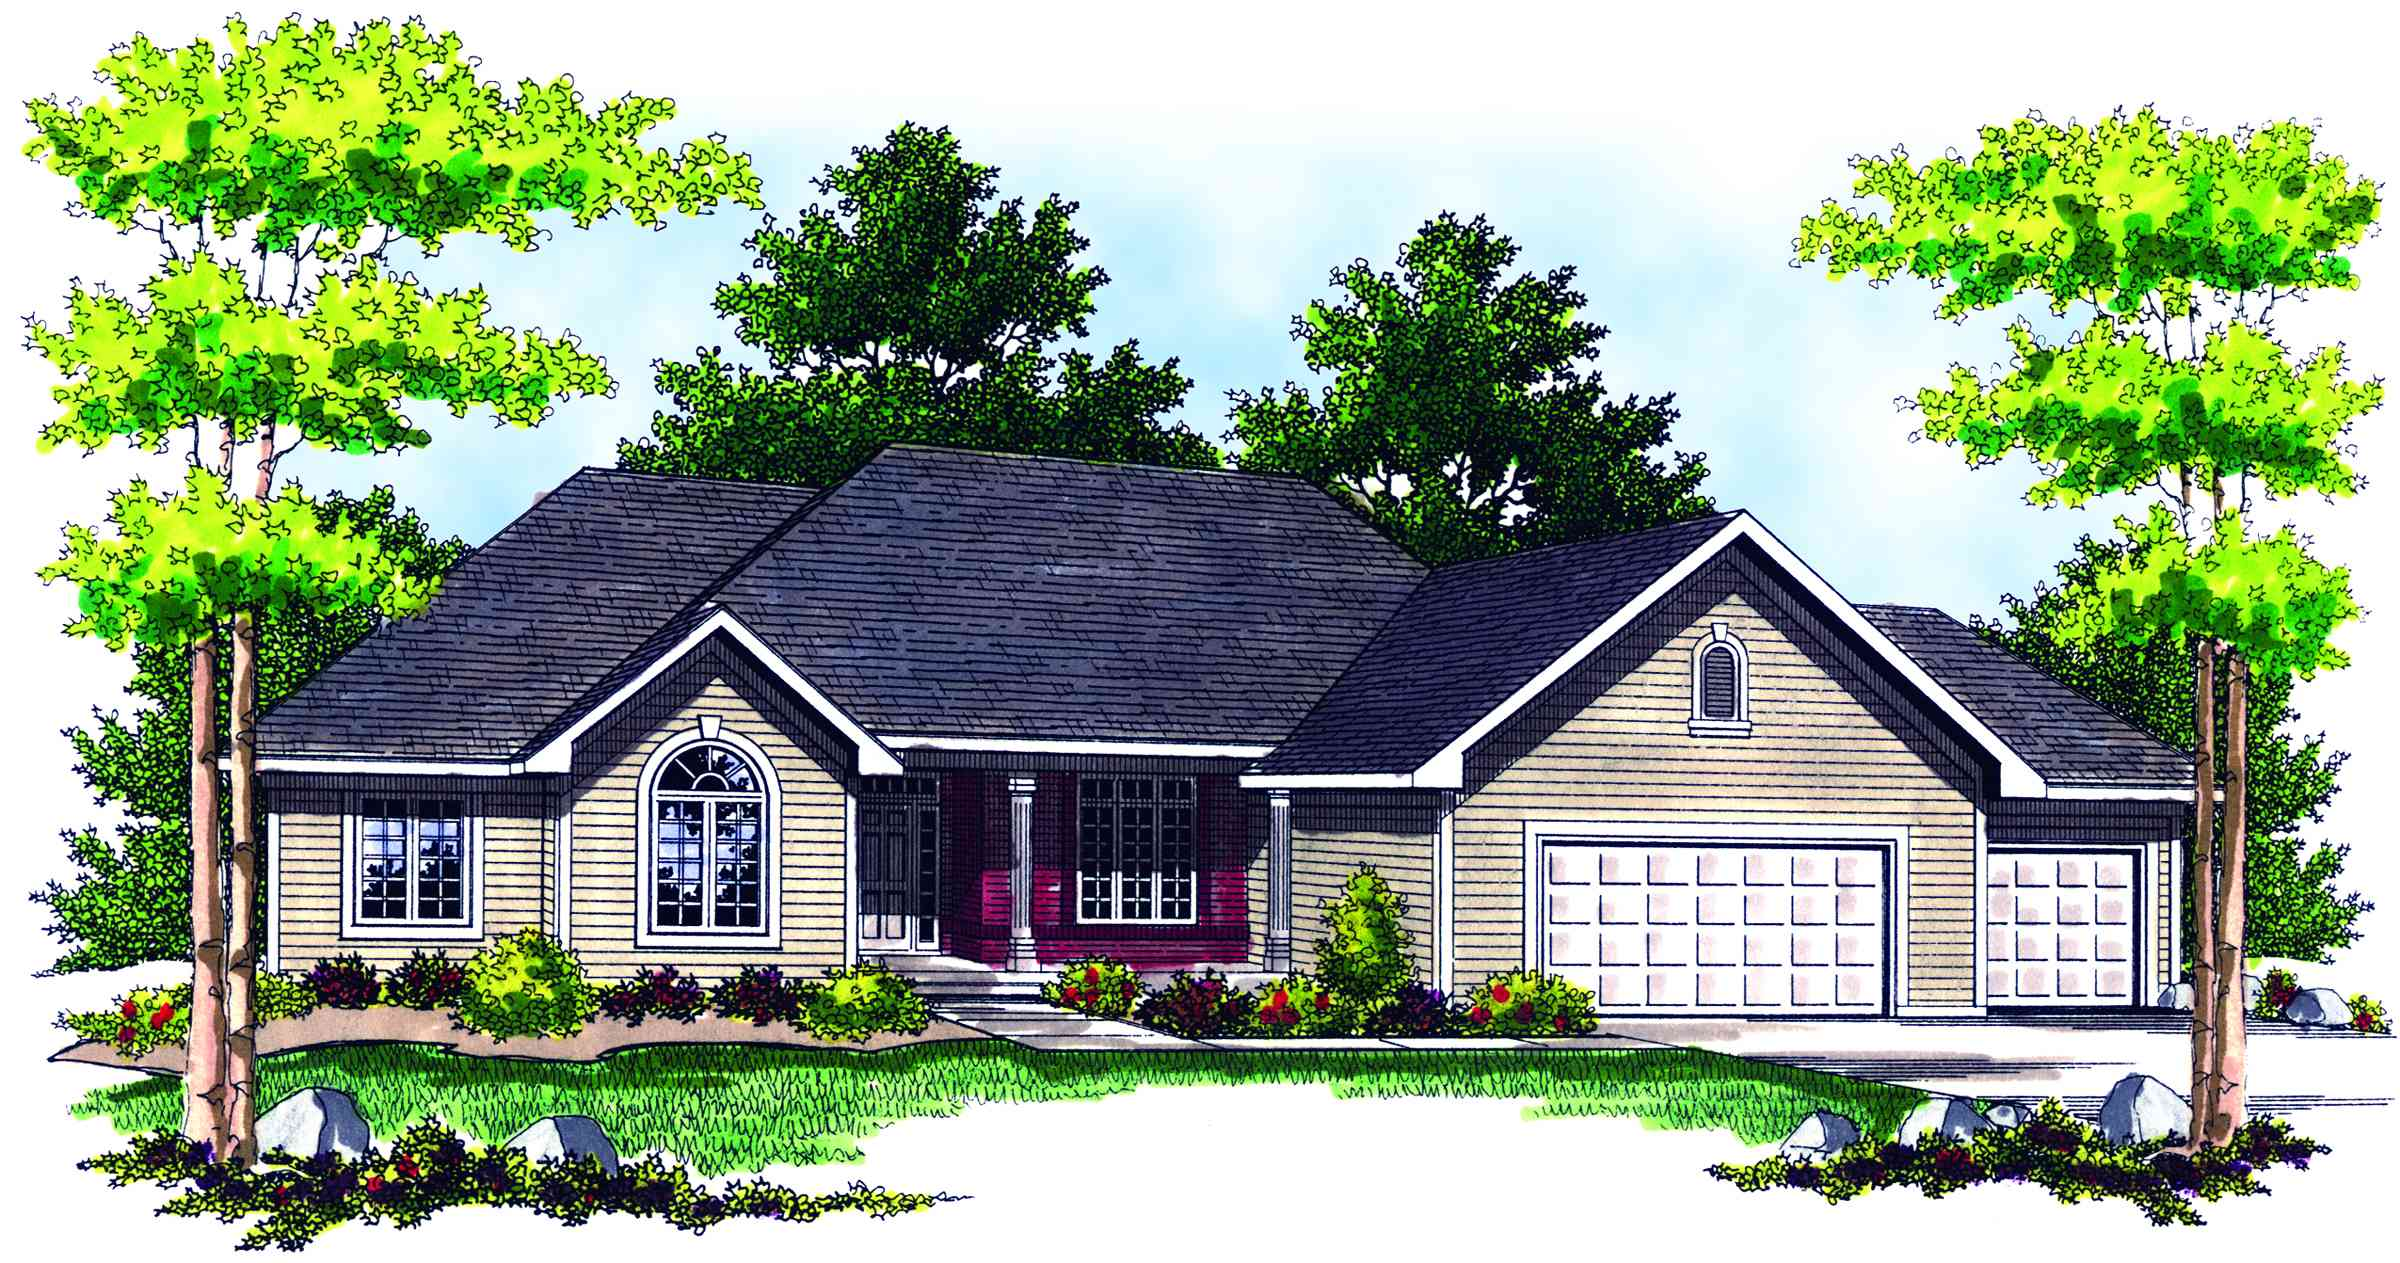 Traditional ranch home plan 89132ah architectural for Traditional ranch homes